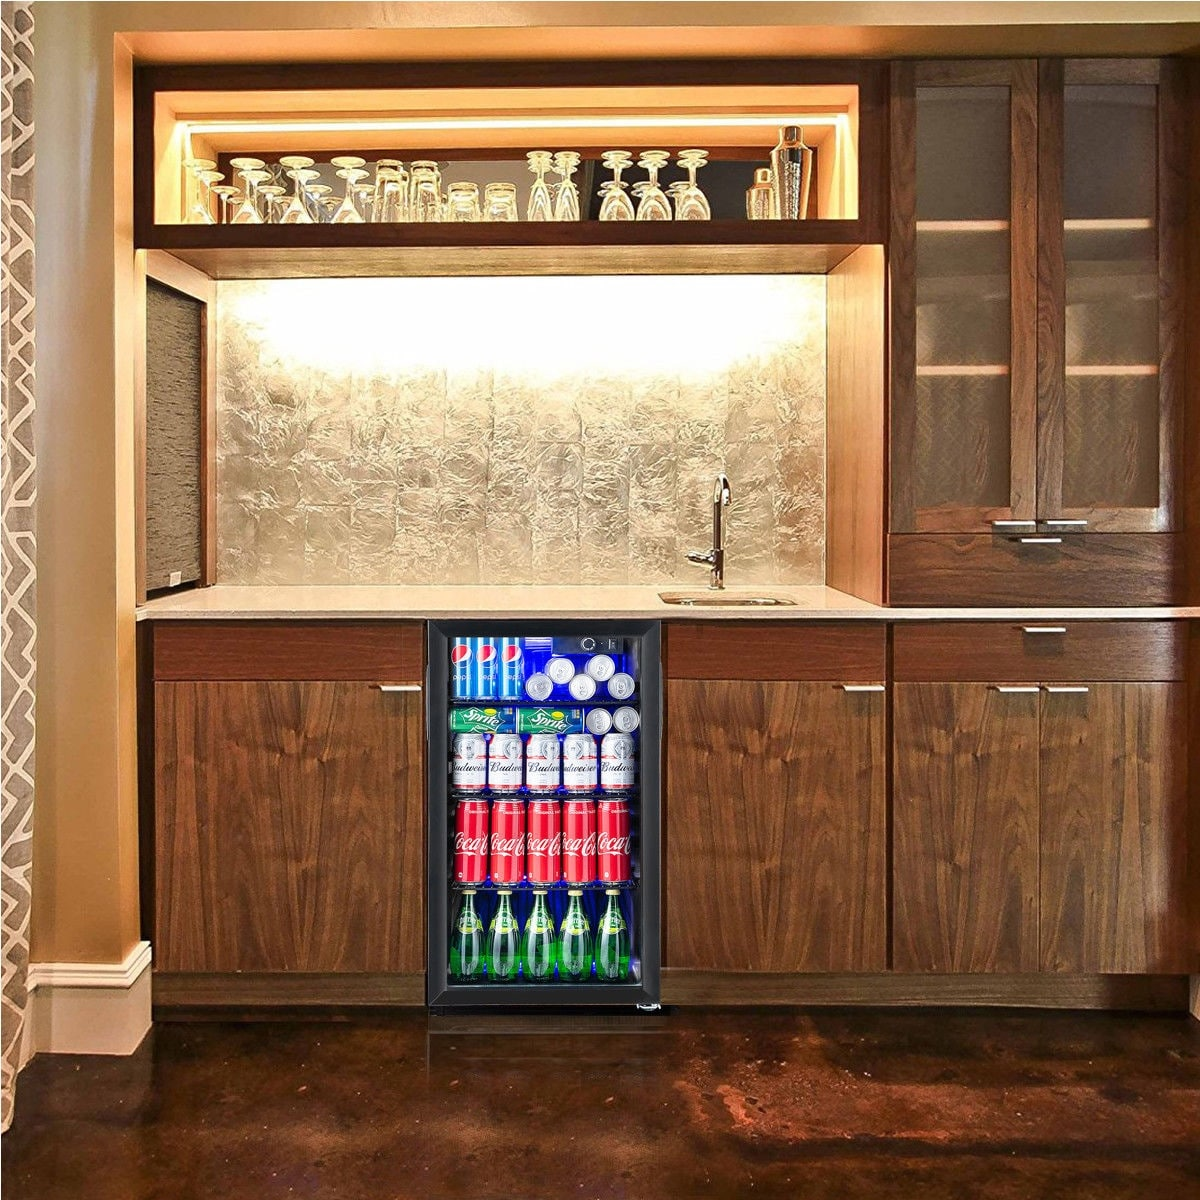 Shop Gymax 120 Can Beverage Refrigerator Beer Wine Soda Drink Cooler Mini Fridge  Glass Door   As Pic   Free Shipping Today   Overstock.com   20372013